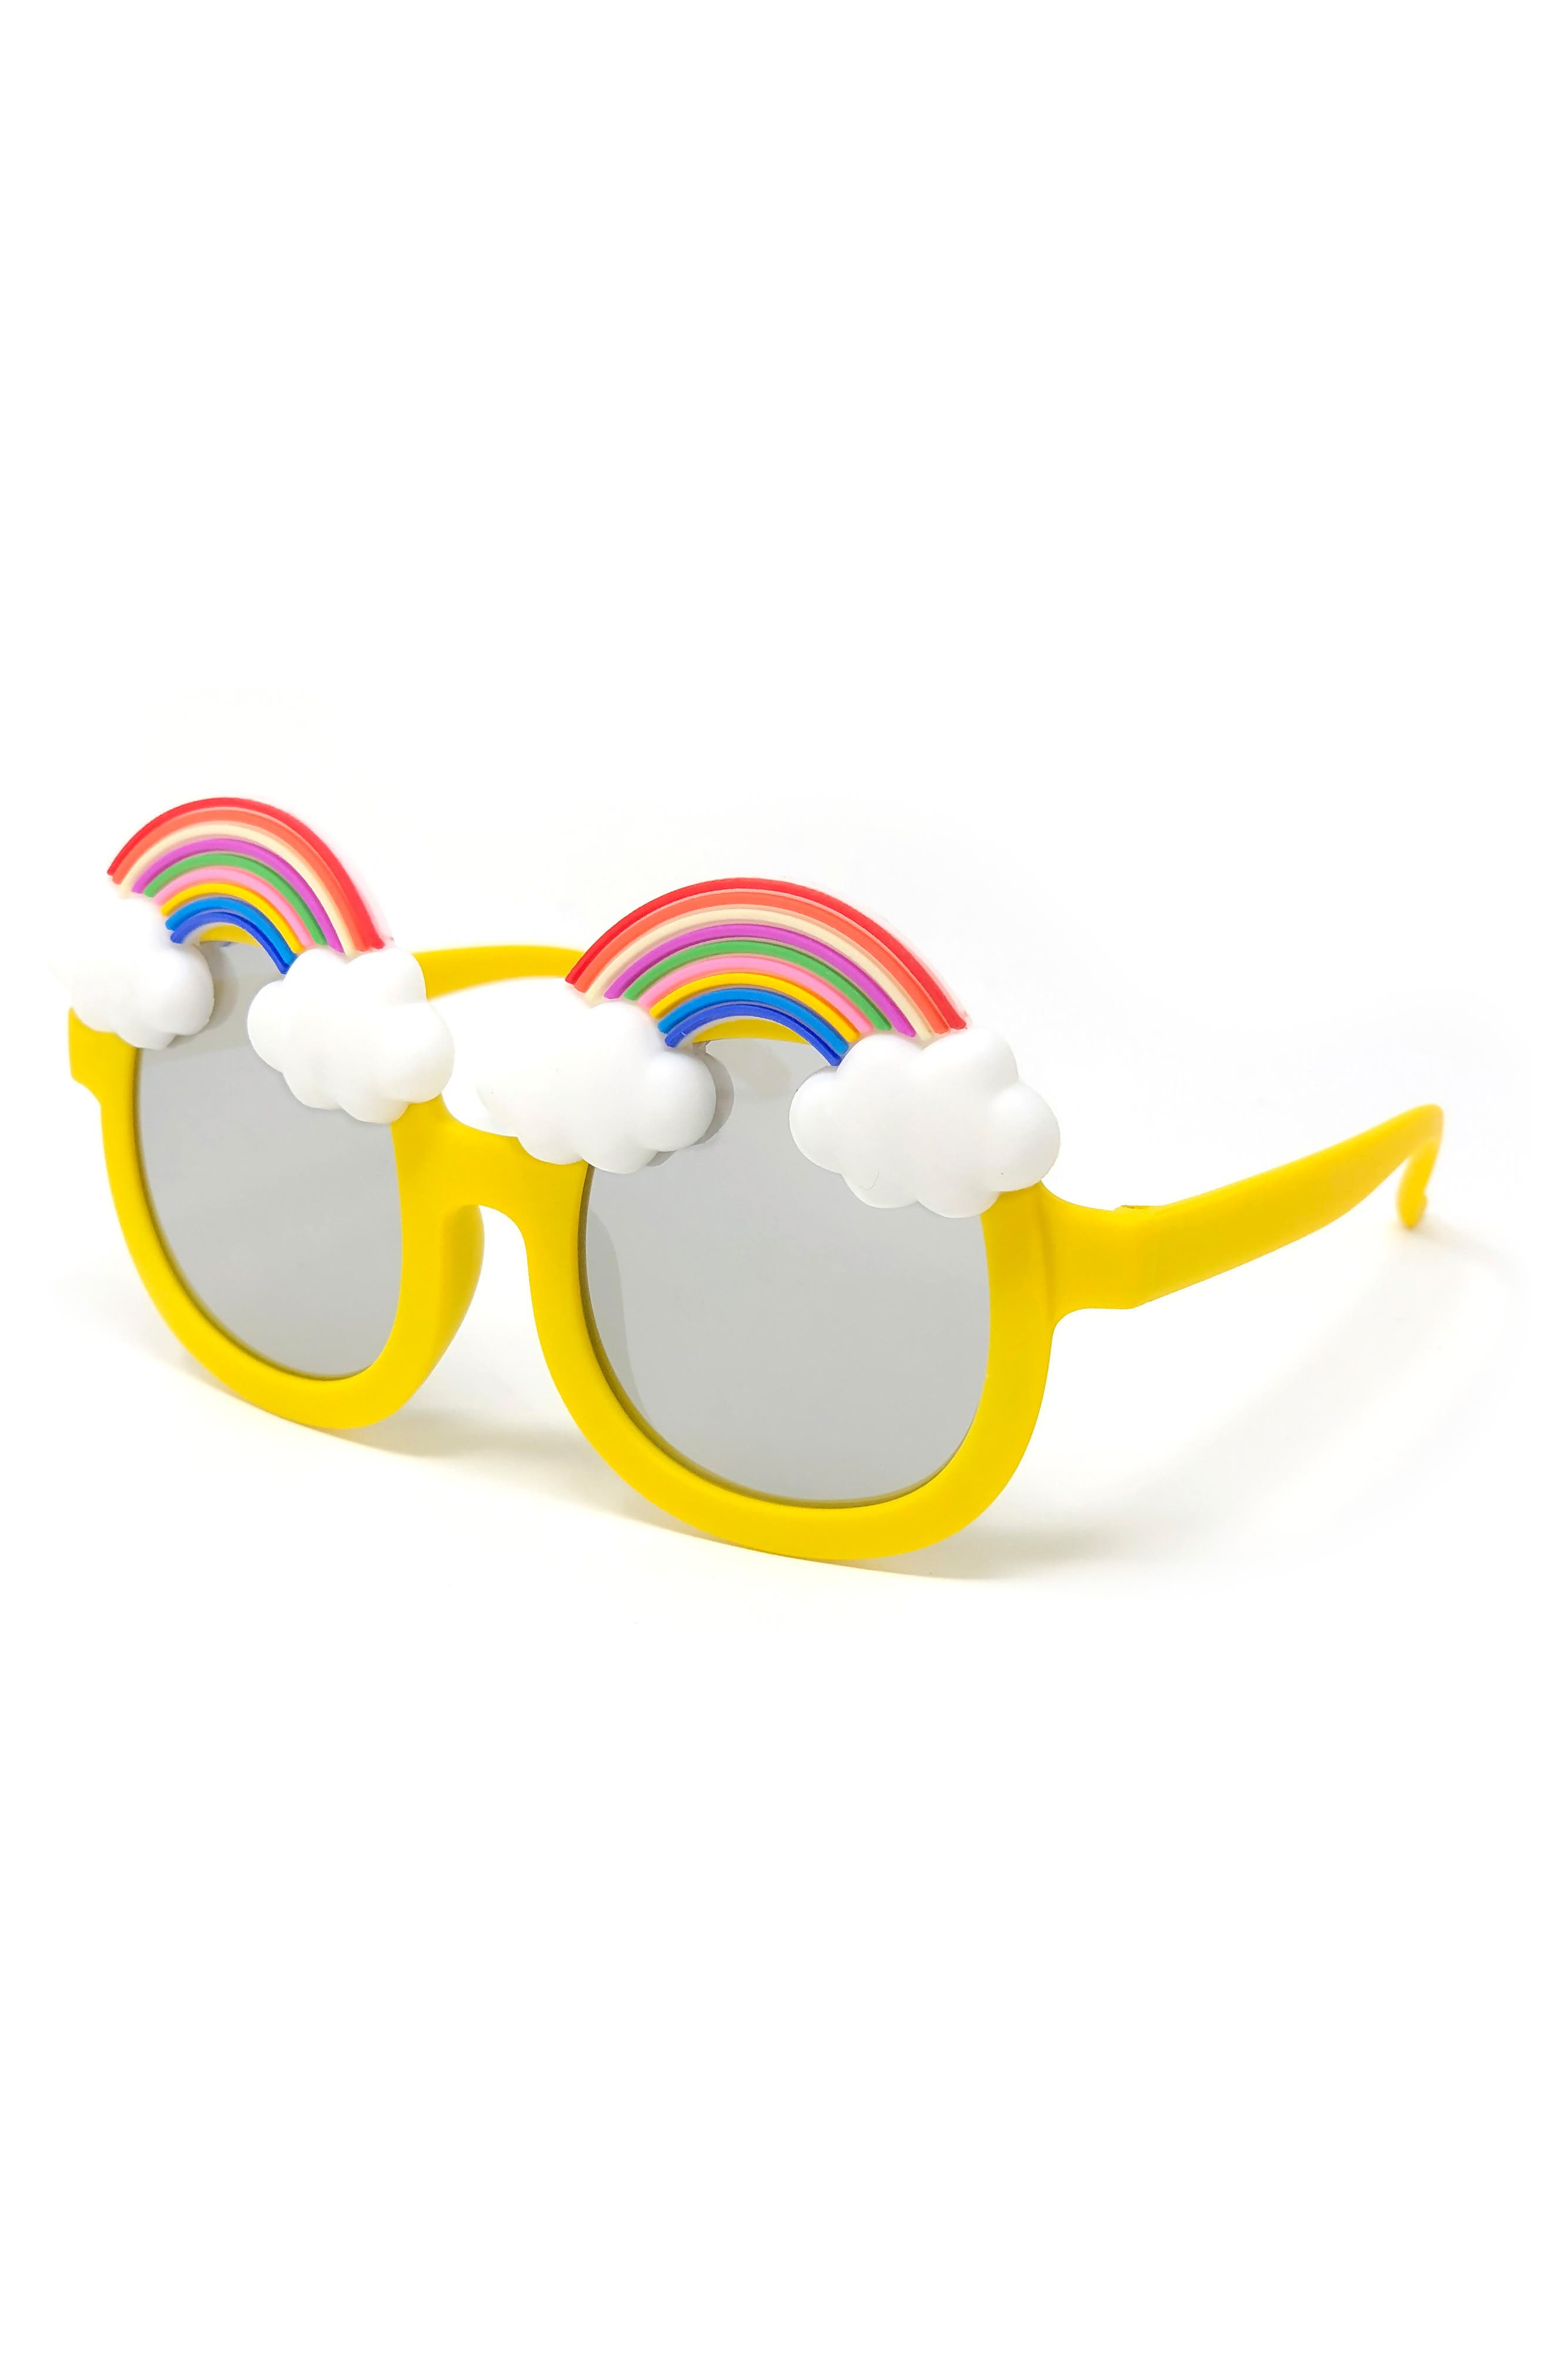 LOOSE LEAF EYEWEAR,                             Rainbow Mirrored Sunglasses,                             Main thumbnail 1, color,                             YELLOW